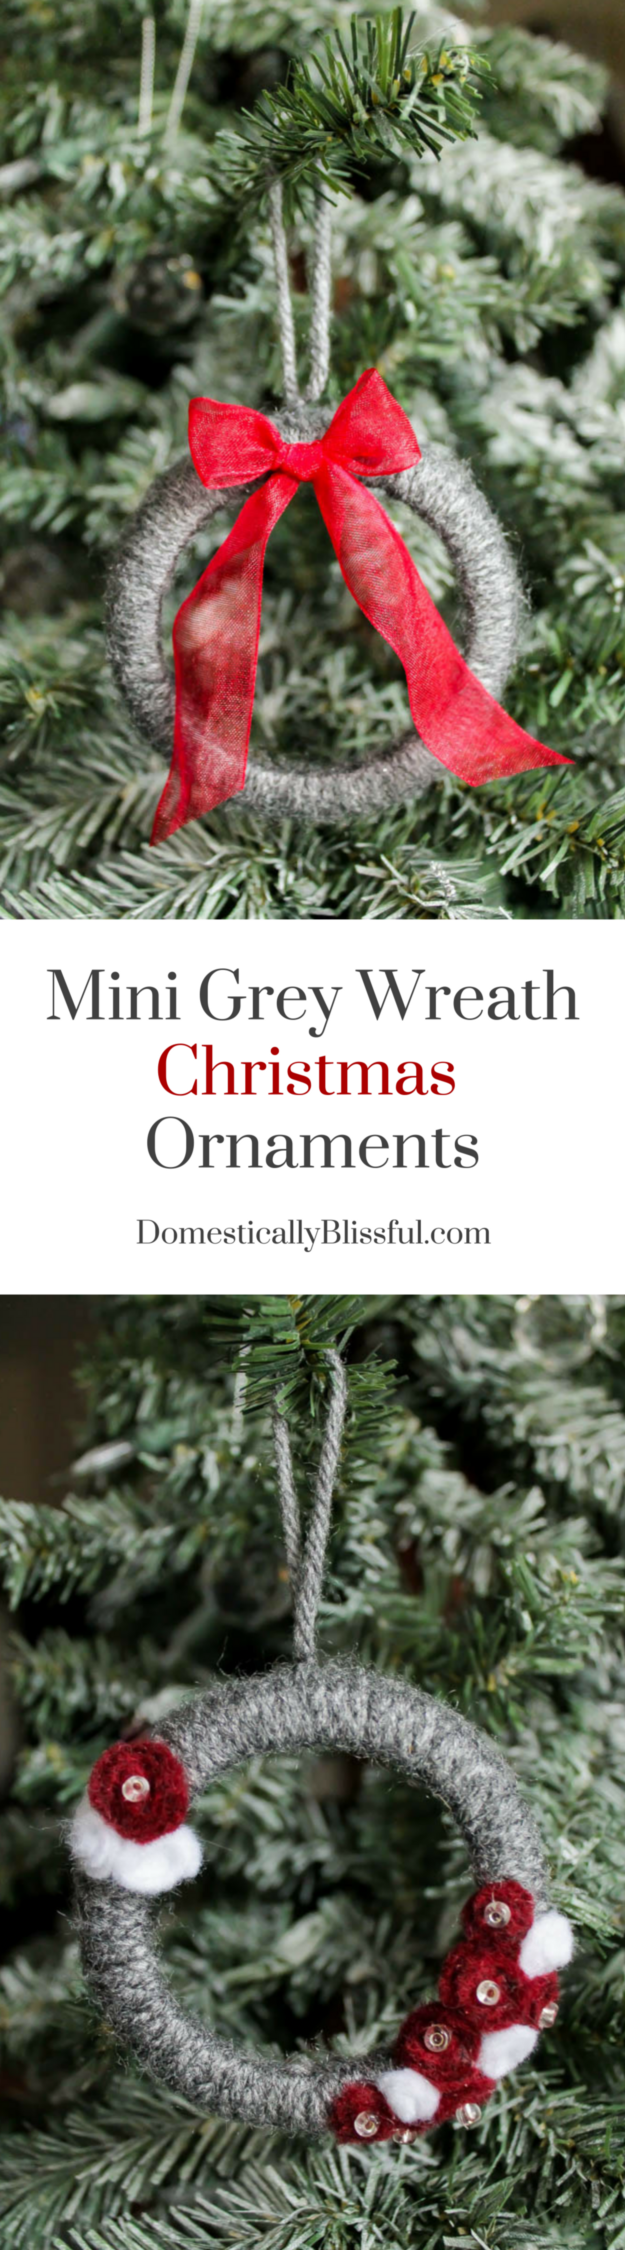 Create these adorable Mini Grey Wreath Christmas Ornaments from soft yarn for your Christmas tree this year! Plus there is a tip on how to make these mini wreaths while repurposing & upcycling!